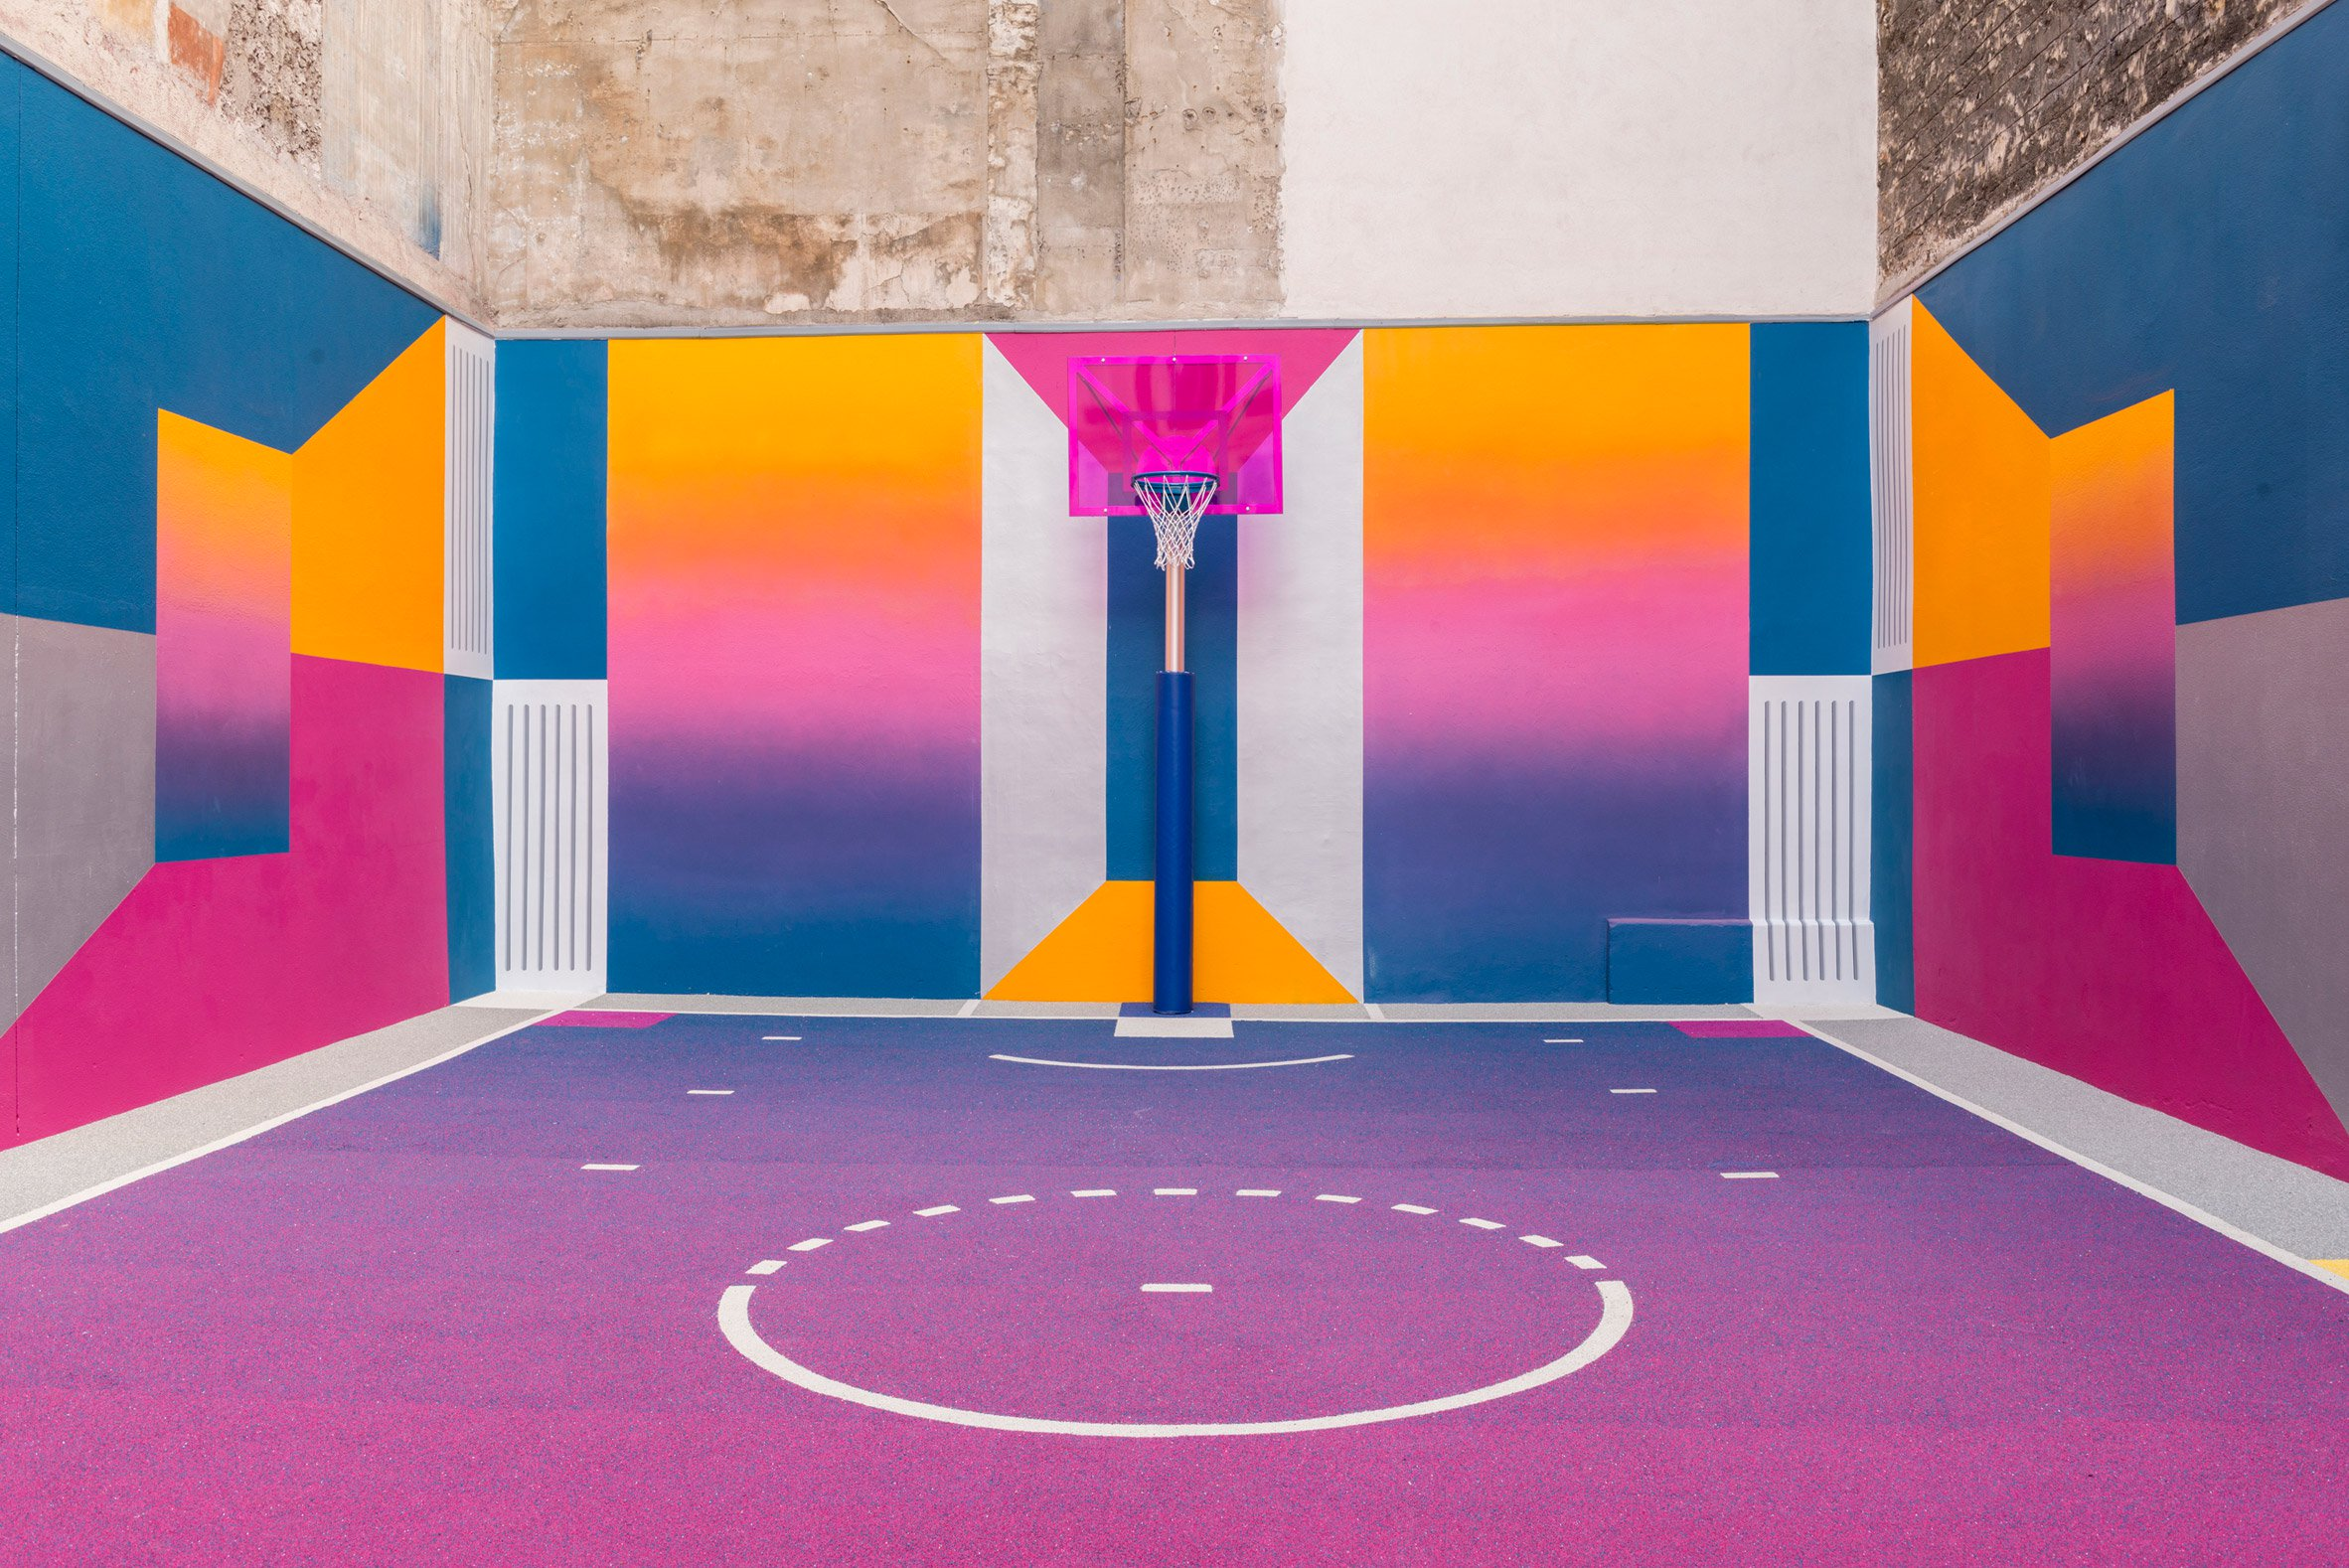 basket-court-pigalle-studio-architecture-public-leisure-paris-france-_dezeen_2364_col_9.jpg